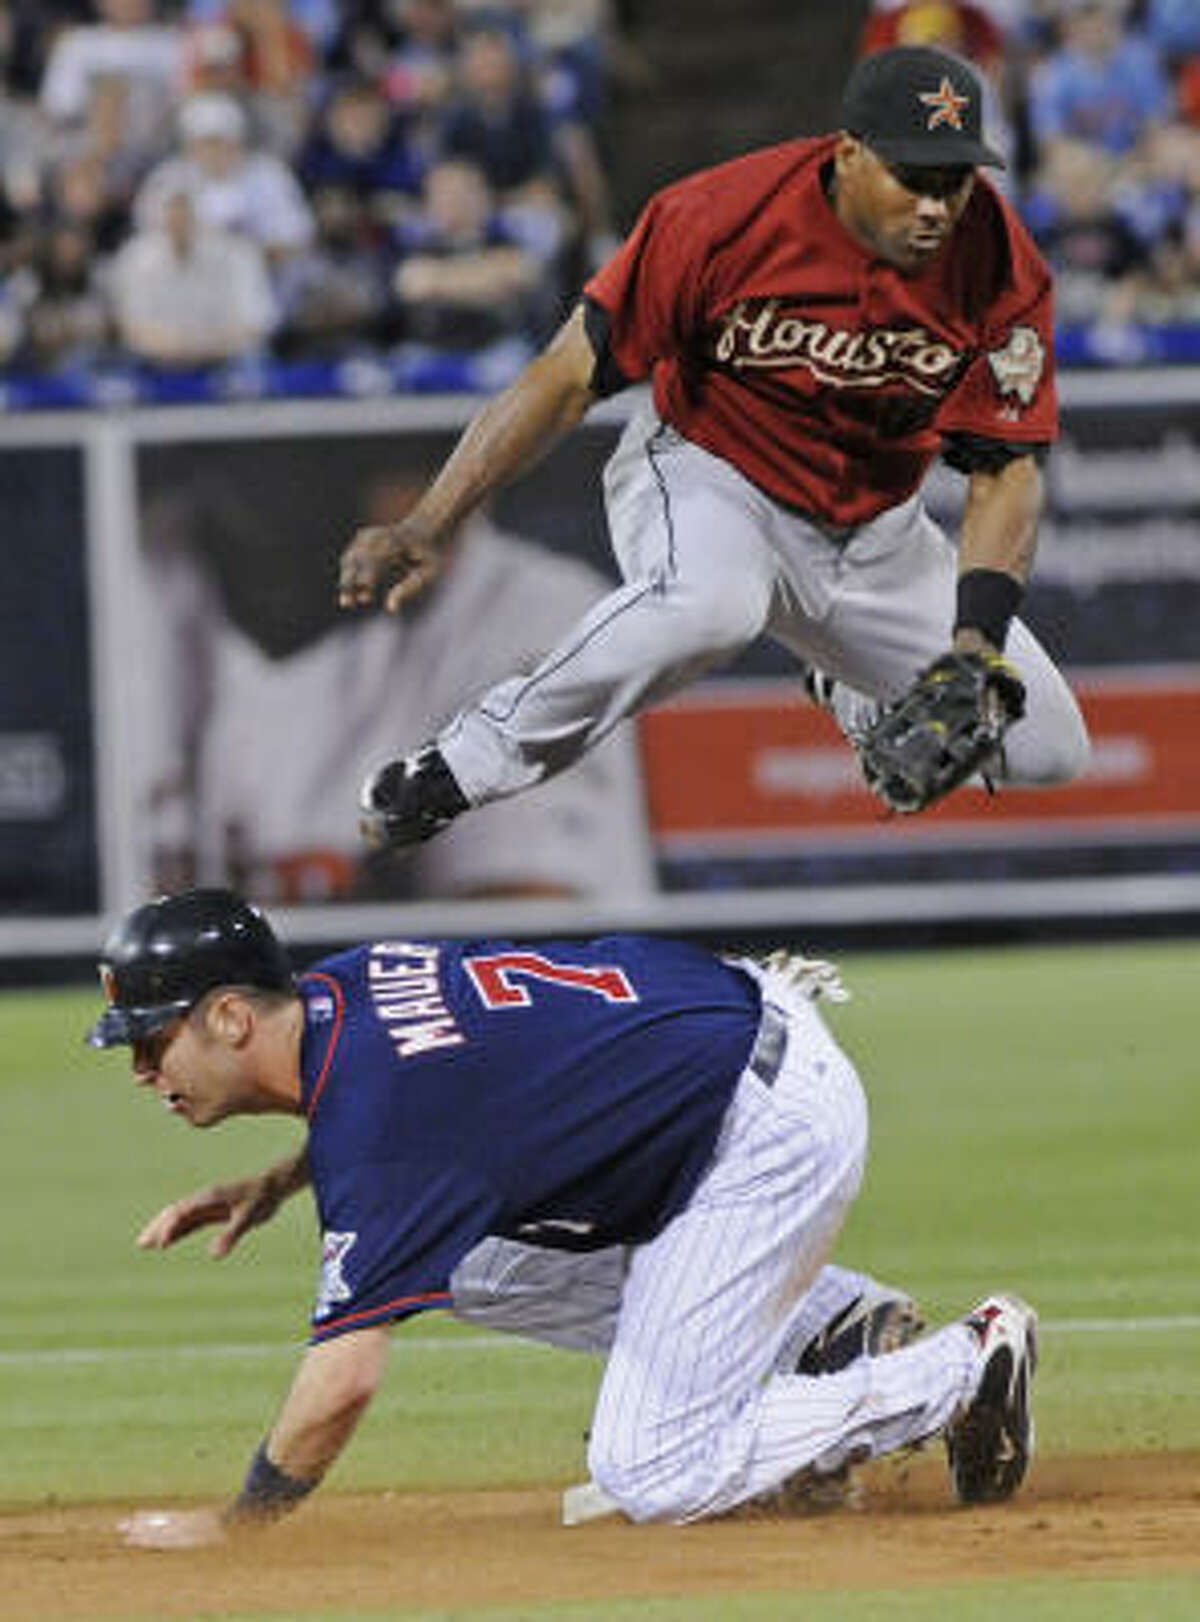 Houston Astros shortstop Miguel Tejada, top, leaps over Minnesota Twins' Joe Mauer at second after completing the double play in the first inning.